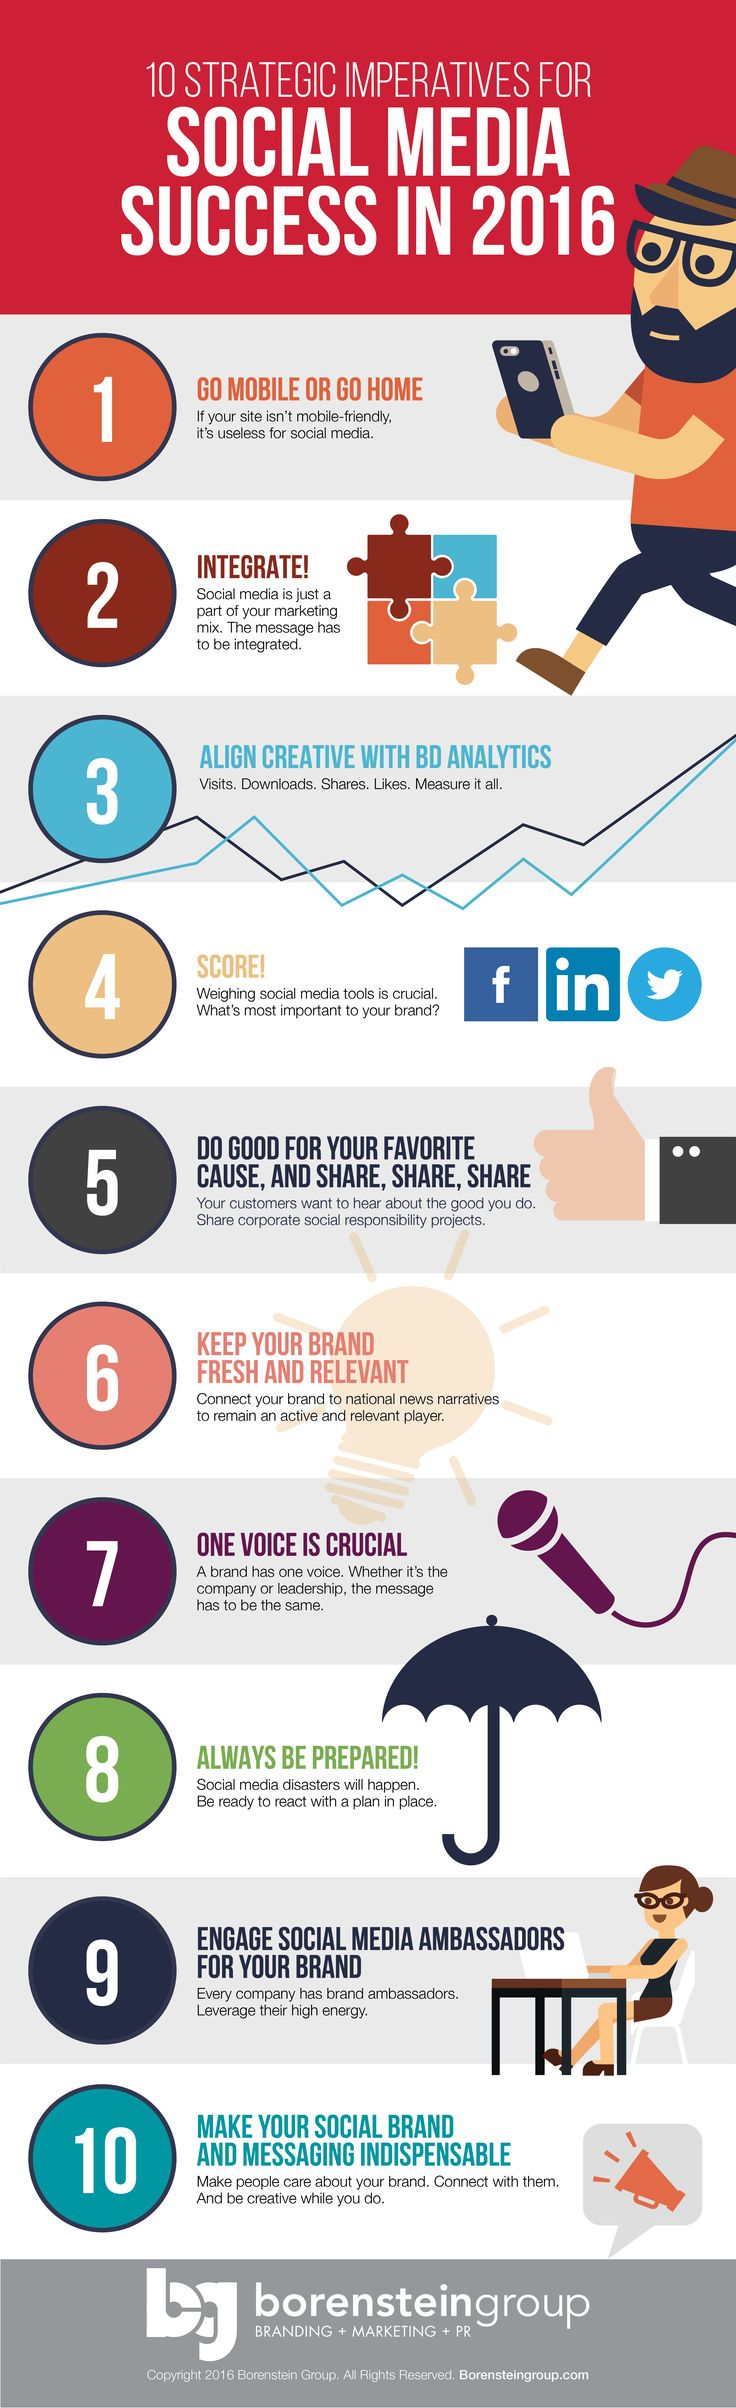 10 Strategic Imperatives for Social Media Success in 2016 Infographic